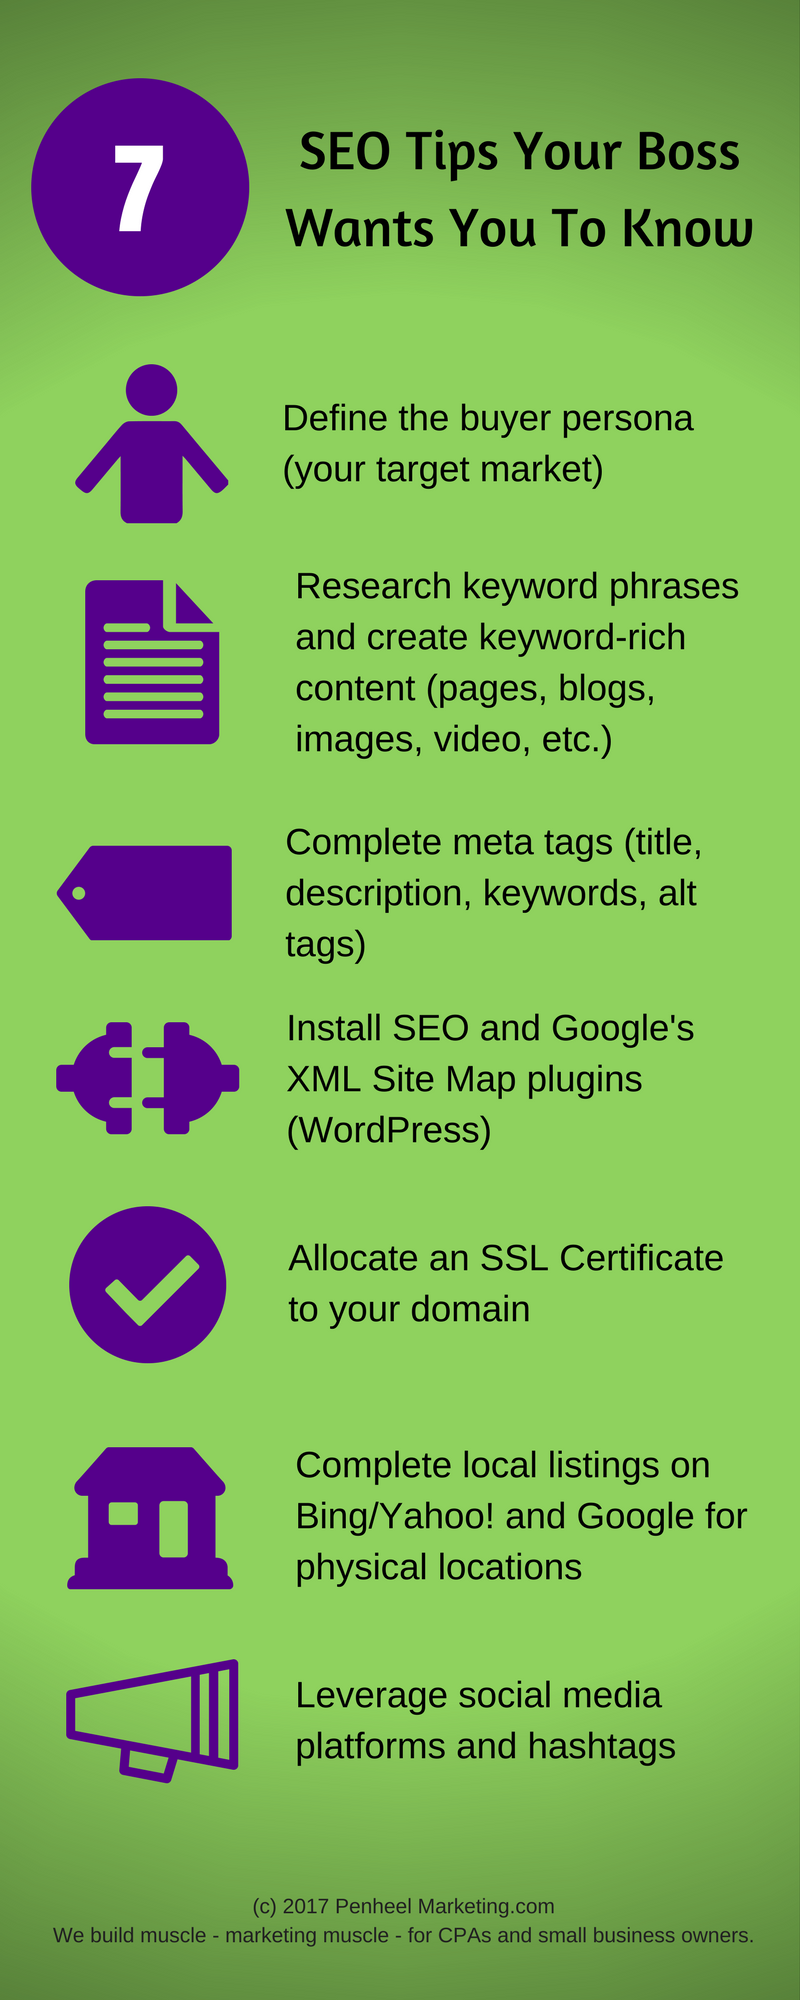 7 SEO Tips Your Boss Wants You to Know_Infographic